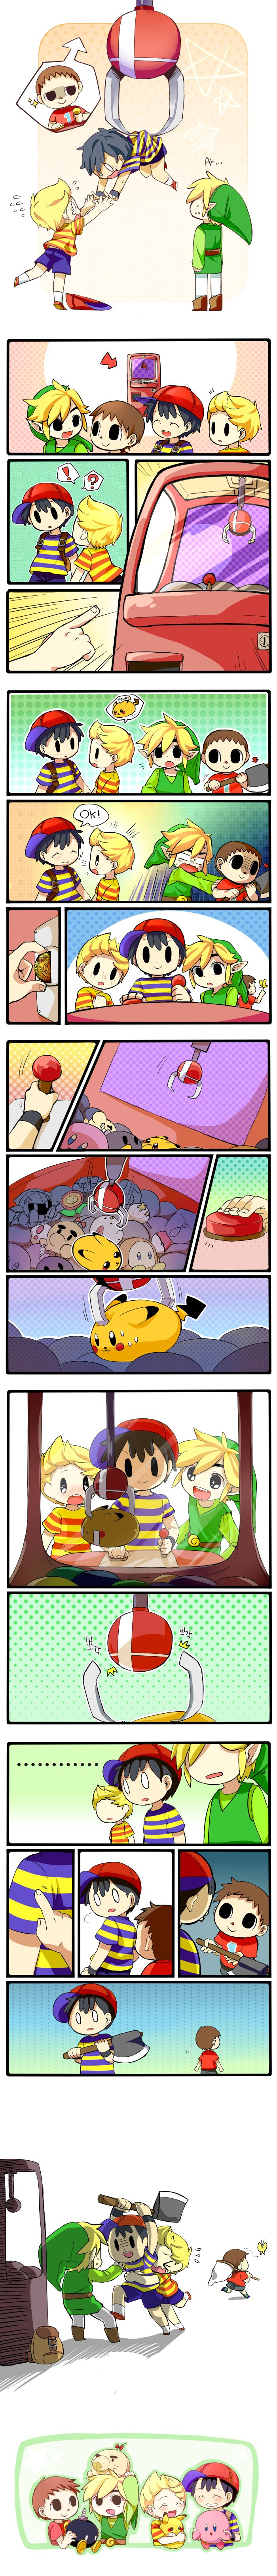 smash bros...I am just like the villager. Claw Crane Game by Creamsouffle.deviantart.com on @deviantART